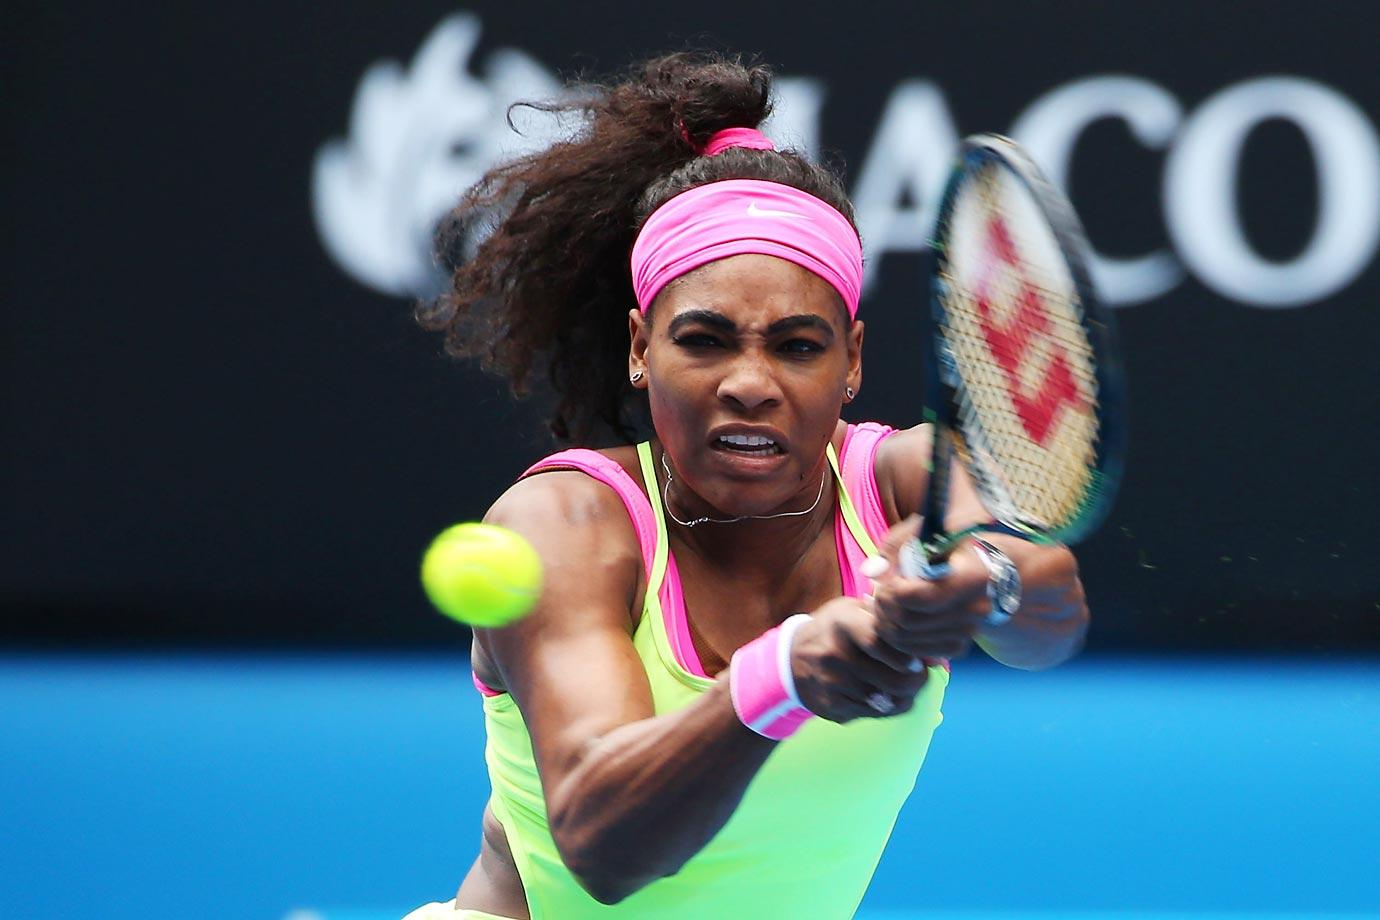 Serena Williams plays a backhand in her semifinal victory over Madison Keys in the 2015 Australian Open. Serena would go on to defeat Maria Sharapova in the final match for her 19th grand slam singles title.